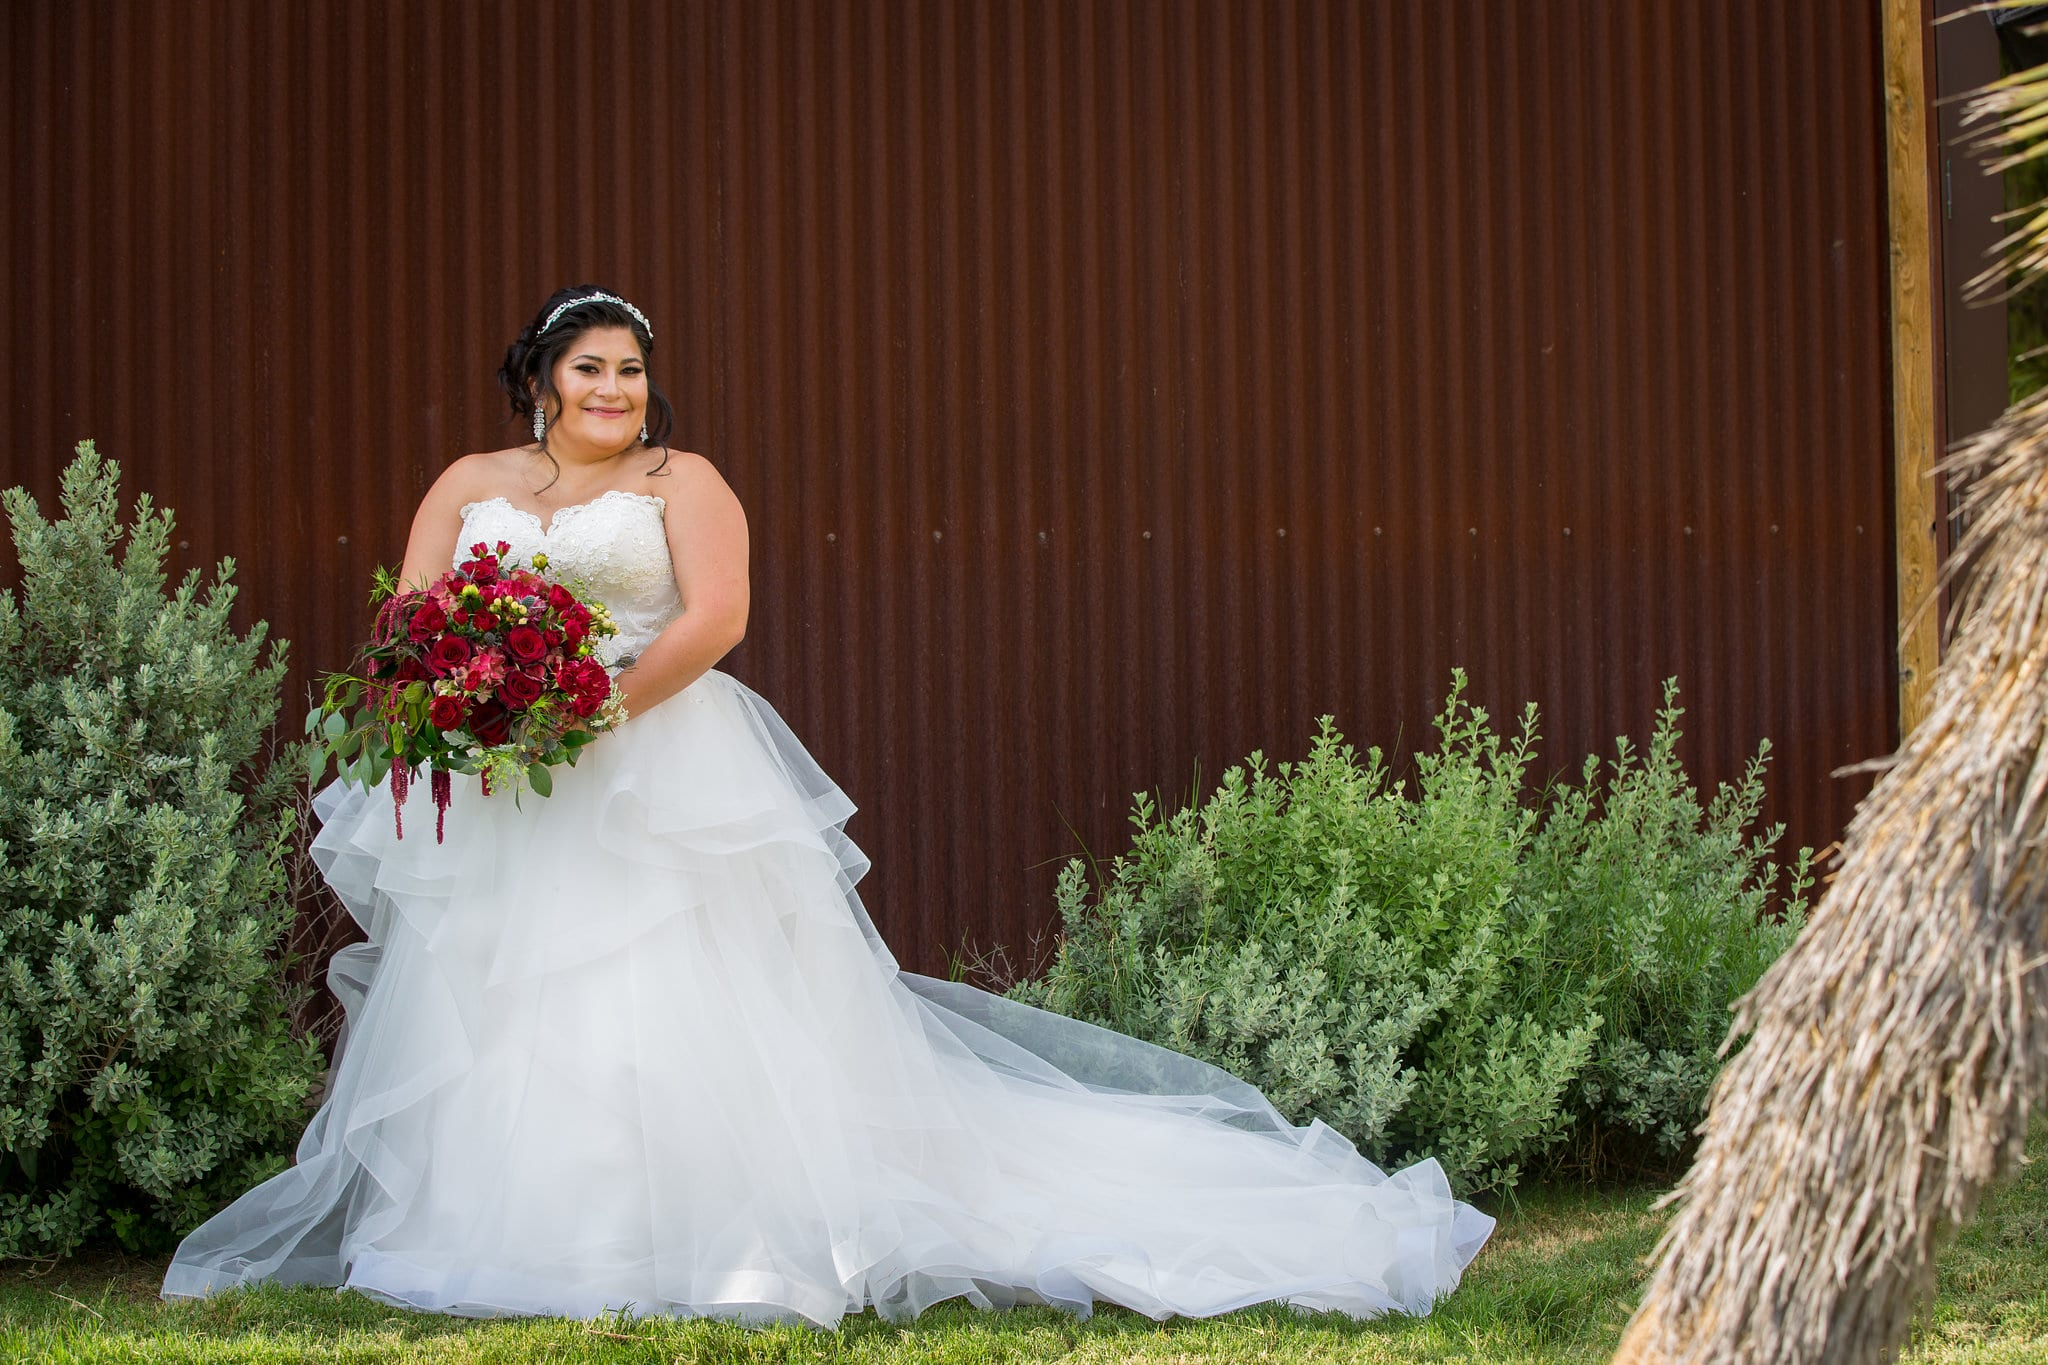 Laura's Bridals at Western Sky on the wall